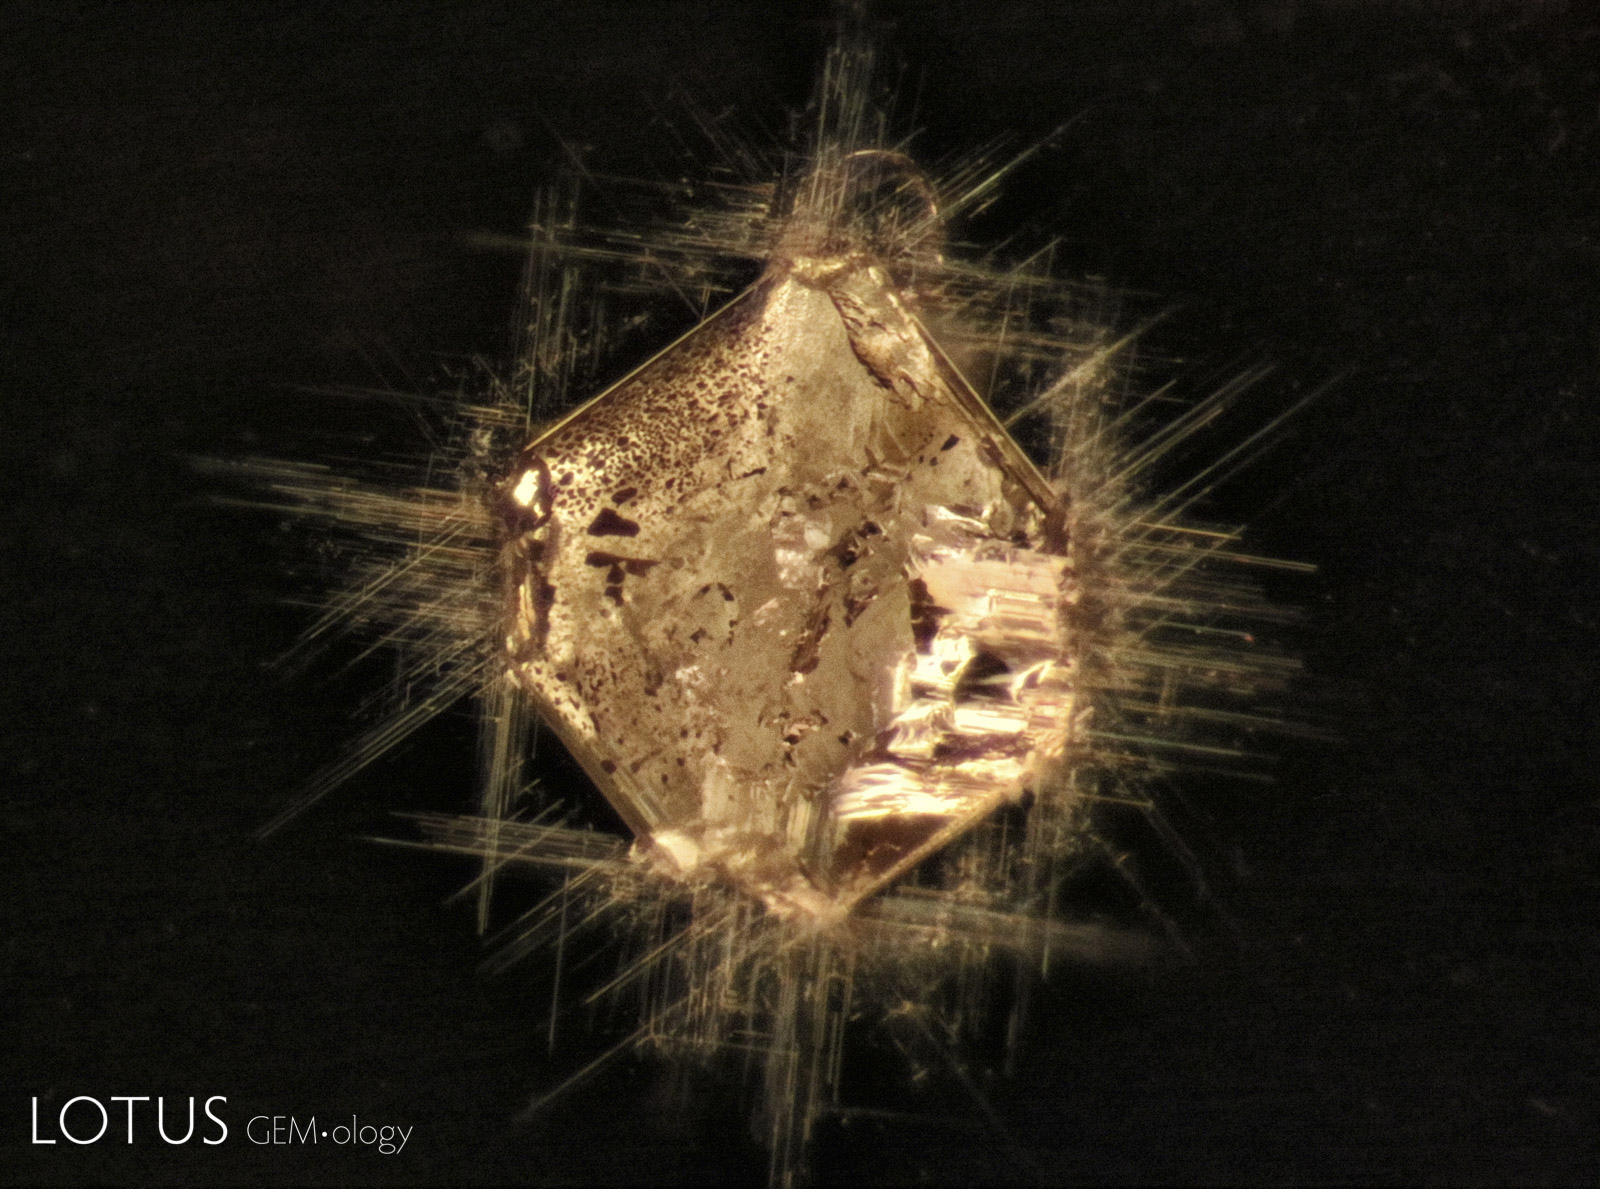 Xenomorphic carbonate (probably dolomite) filling an octahedral negative crystal with oriented needles at the corners. The needles might be either mineral matter or acicular voids. Spinel host from Burma (Myanmar). 200X.